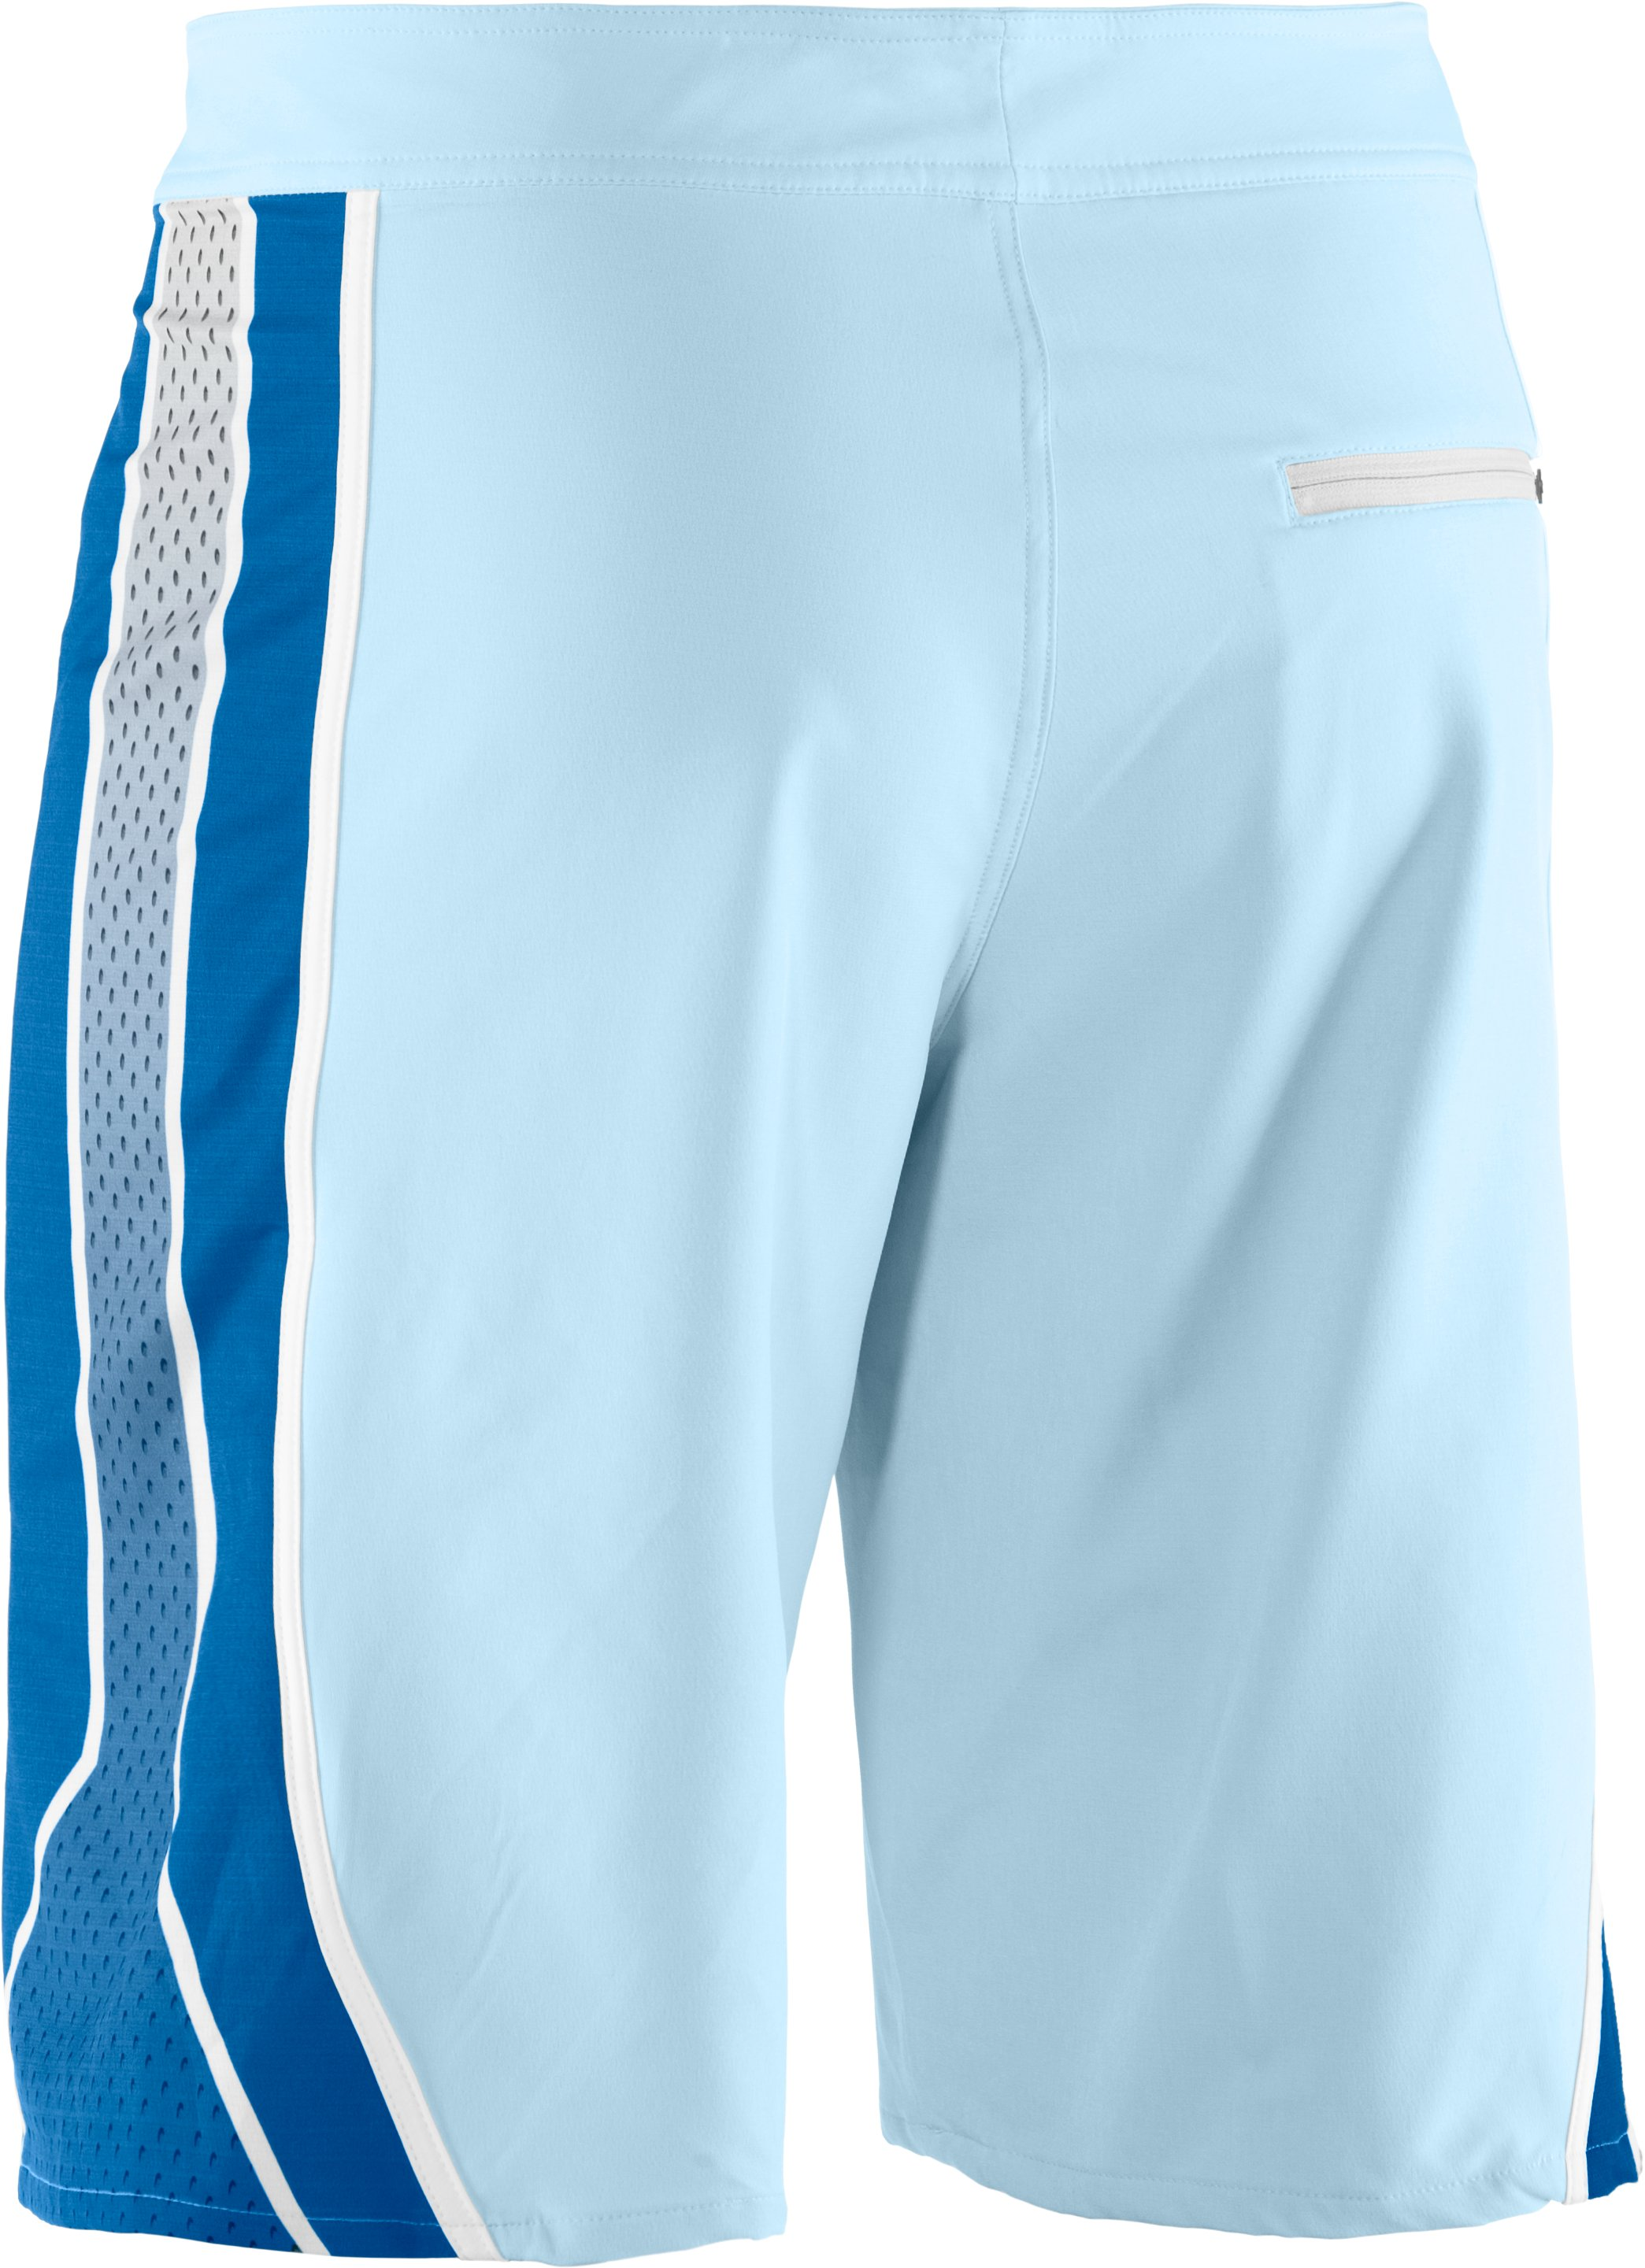 Men's UA Munnaruck Board Shorts, STREAM